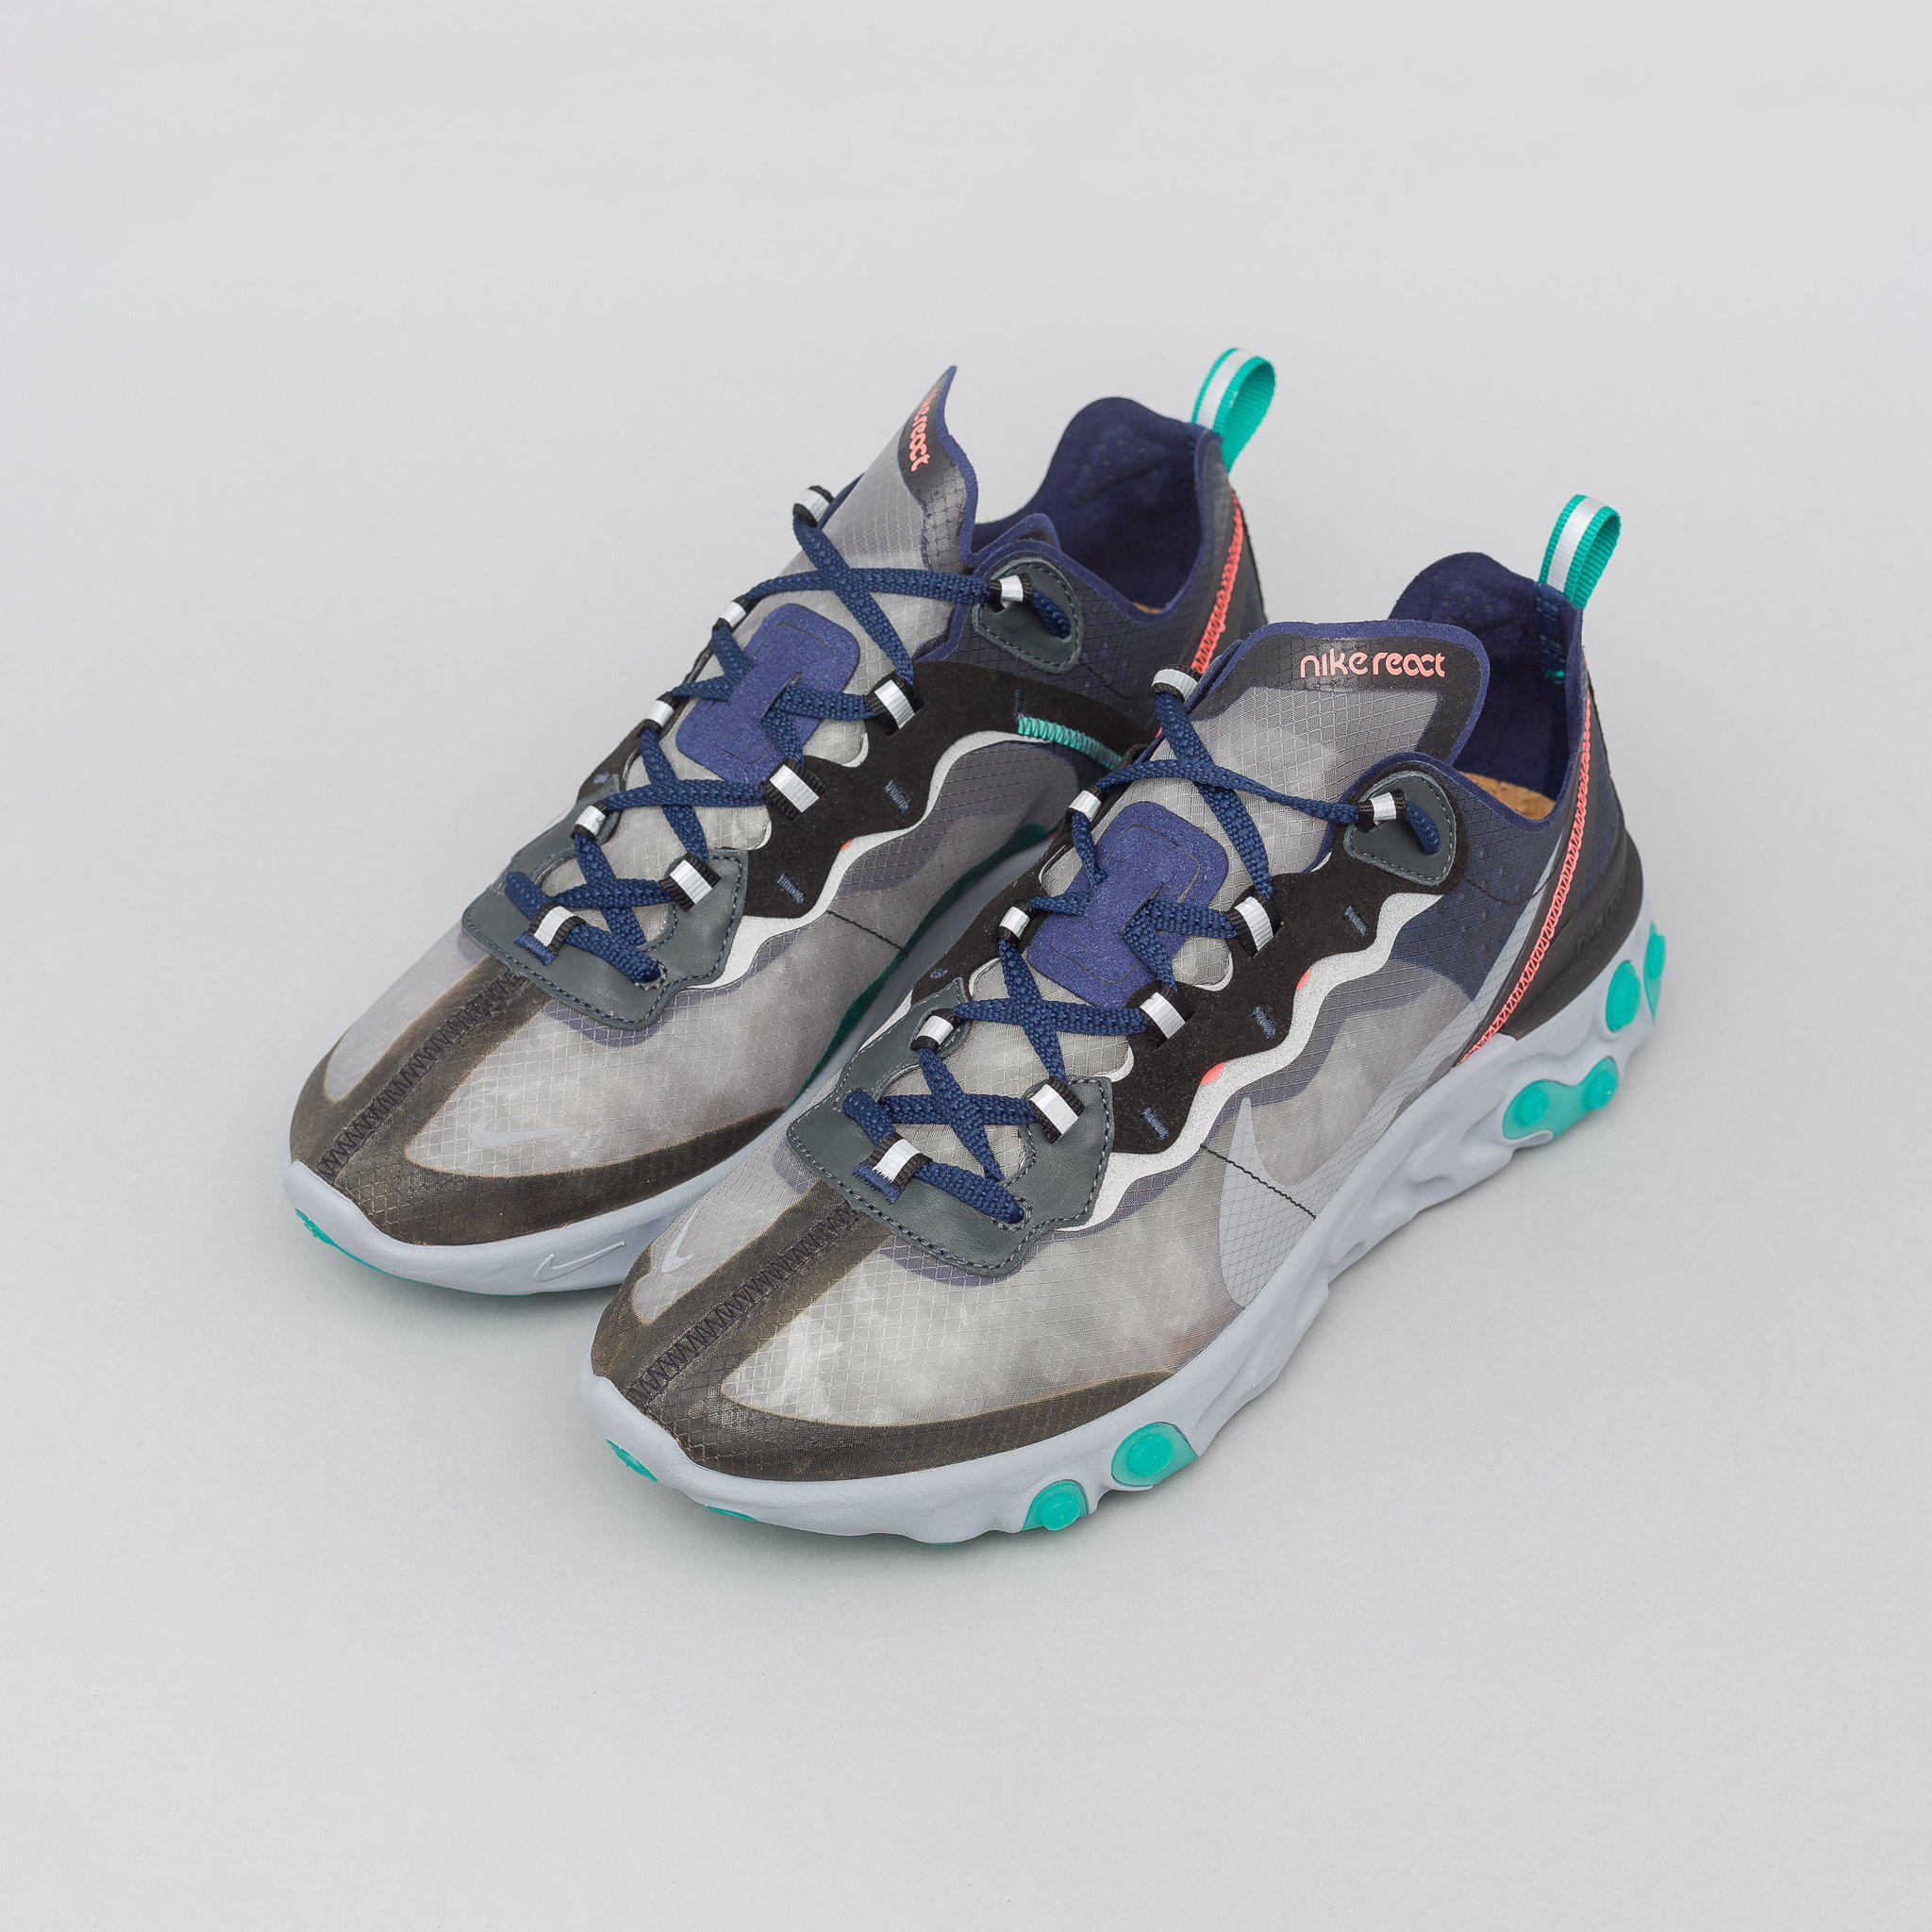 f26136df12f0 Lyst - Nike React Element 87 In Black midnight Navy neptune Green in ...